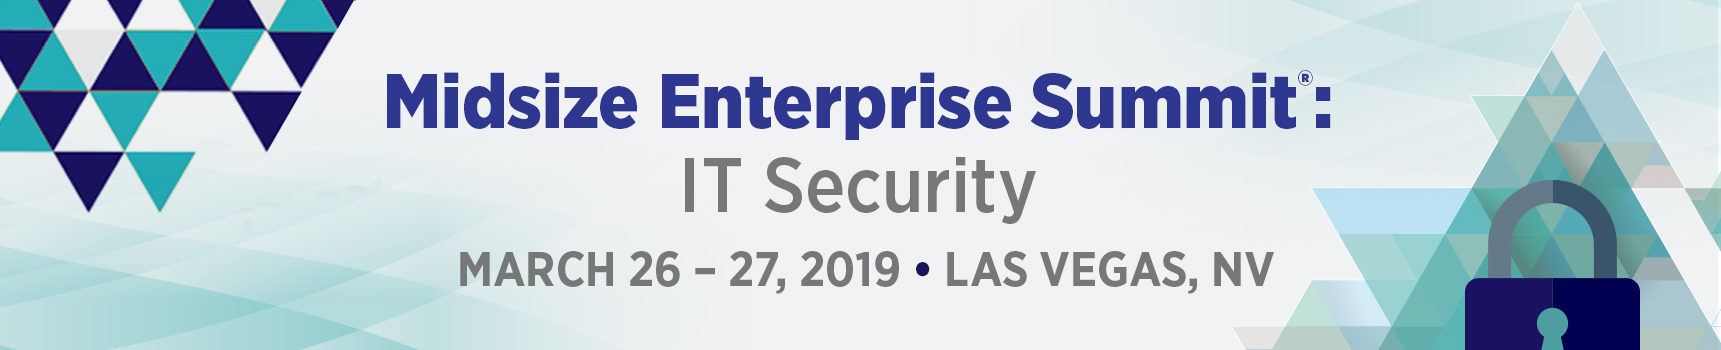 MES IT Security 2019